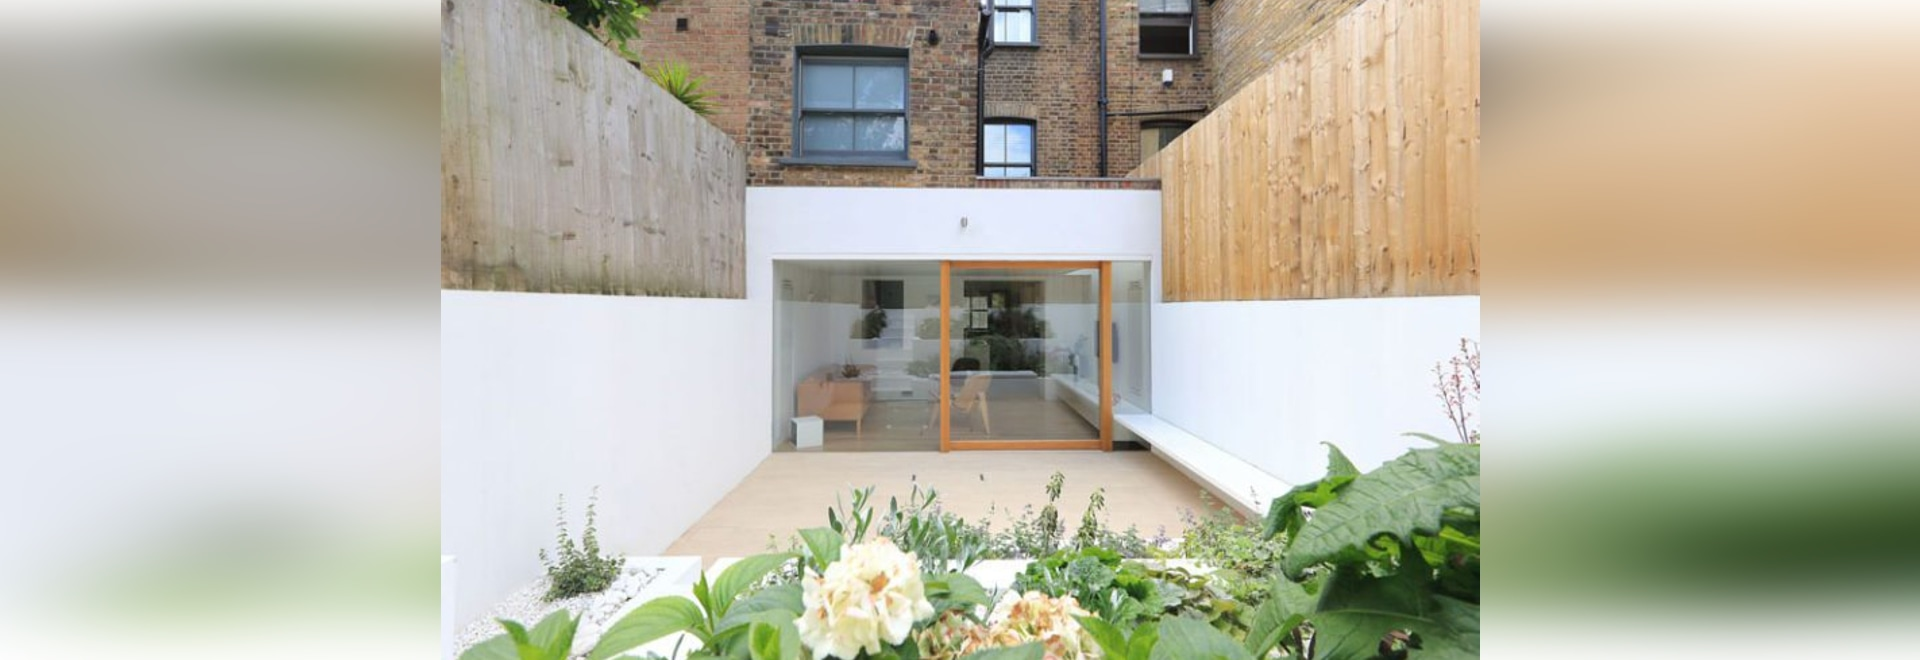 A Bright White Dining Room Extension And Terraced Garden Were Added To This East London Home